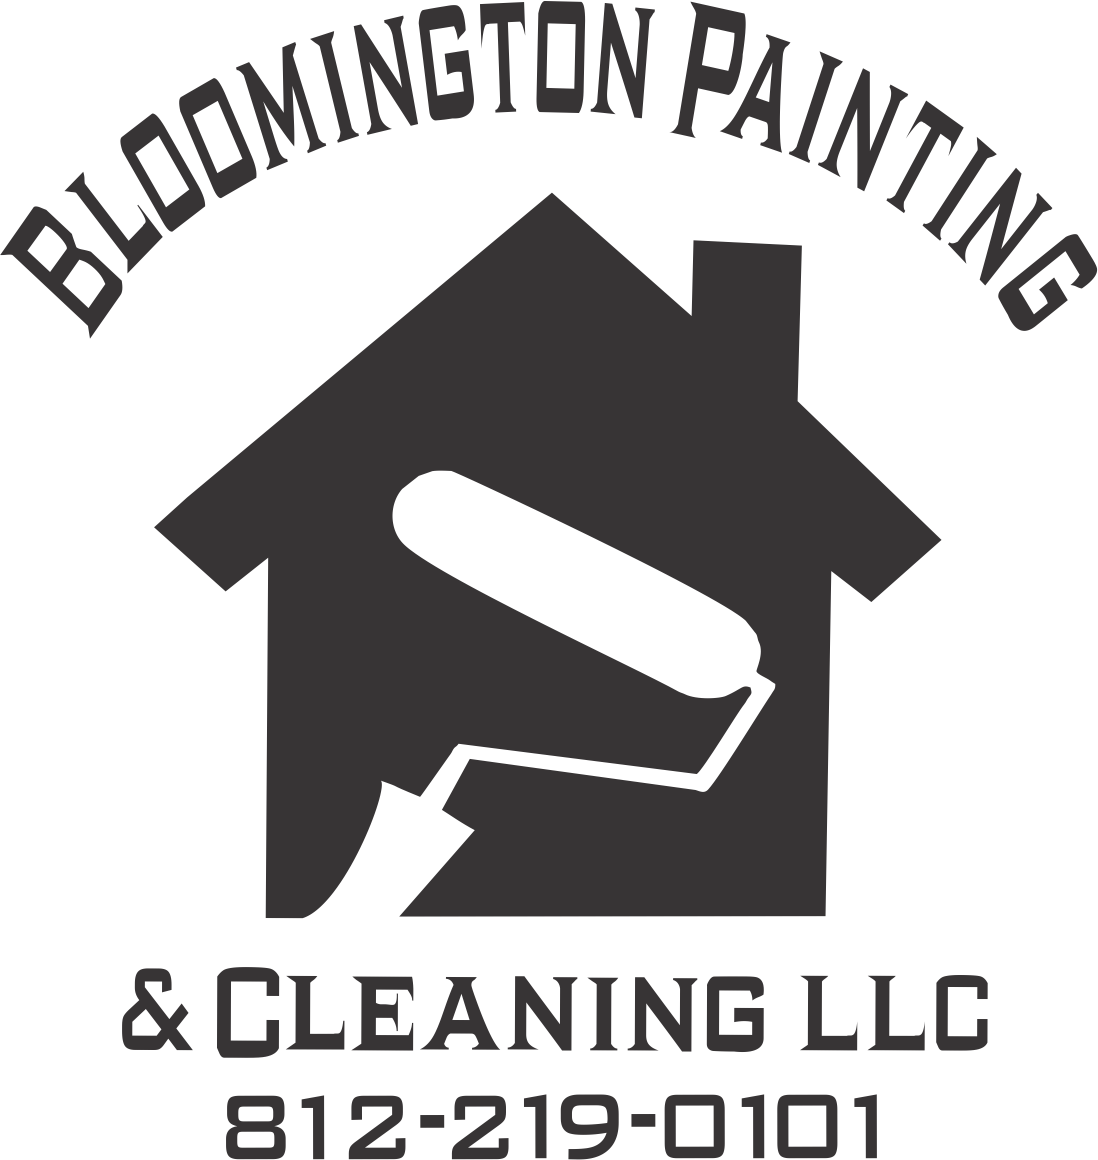 Bloomington Painting and Cleaning LLC